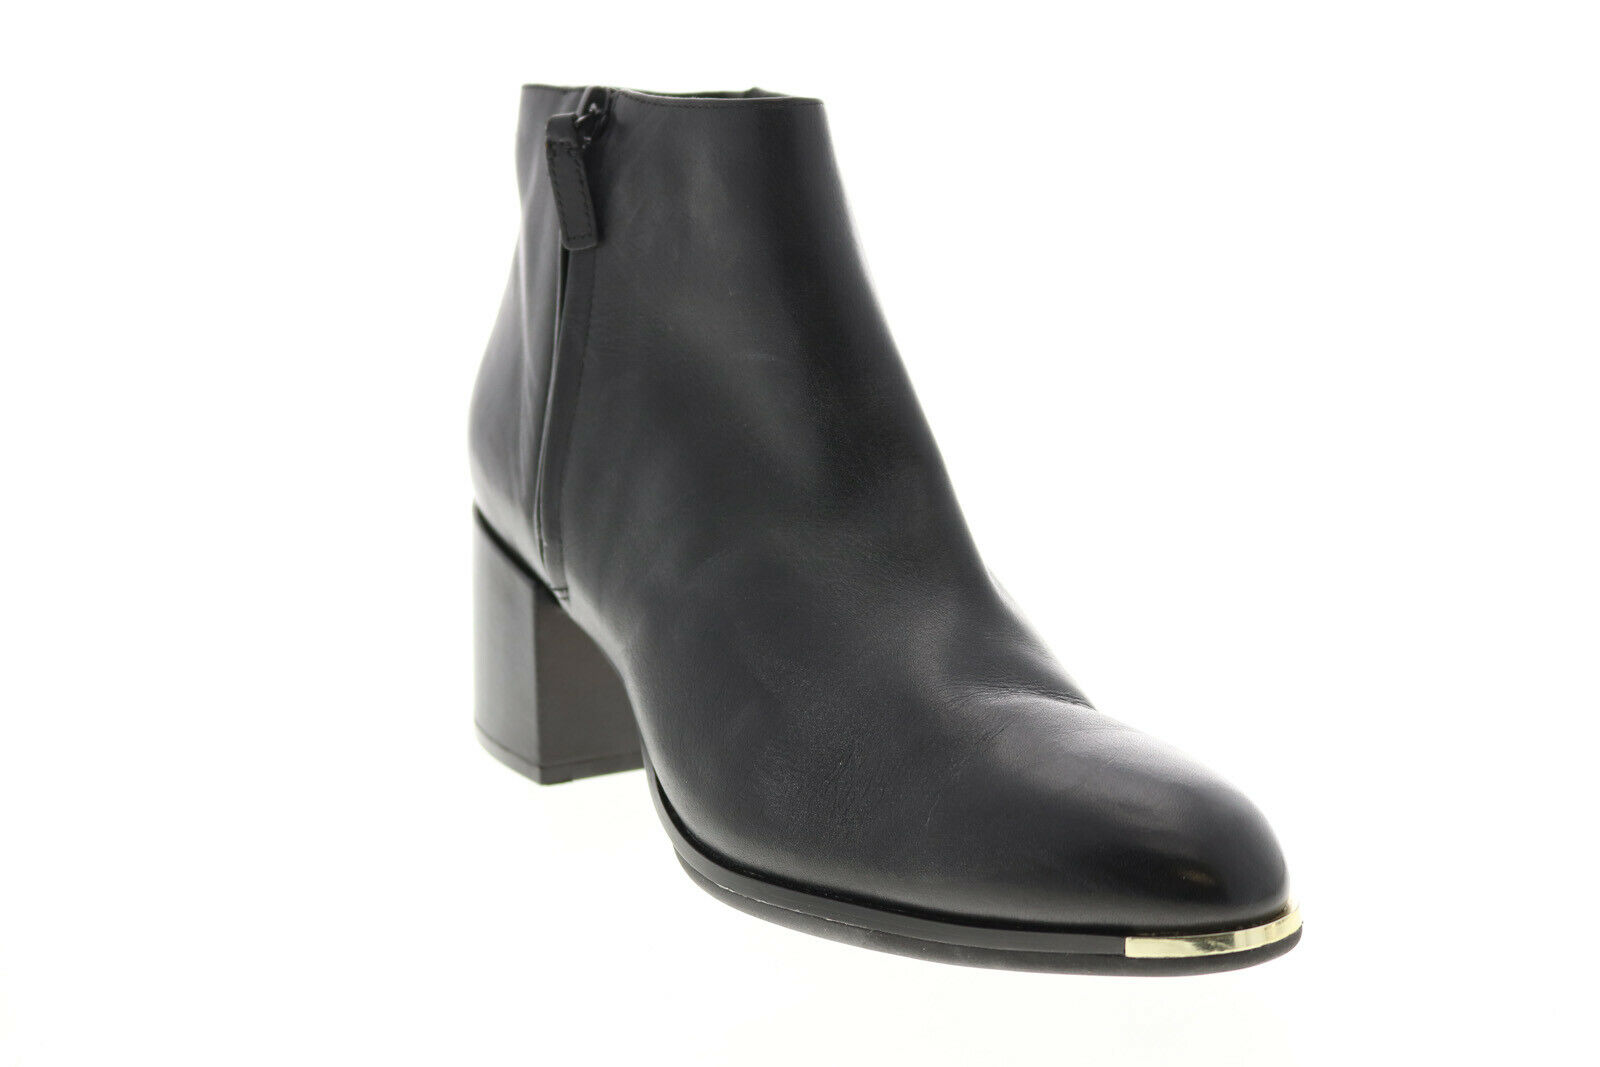 Cole Haan Grand Ambition W15824 Womens Black Leather Ankle & Booties Boots